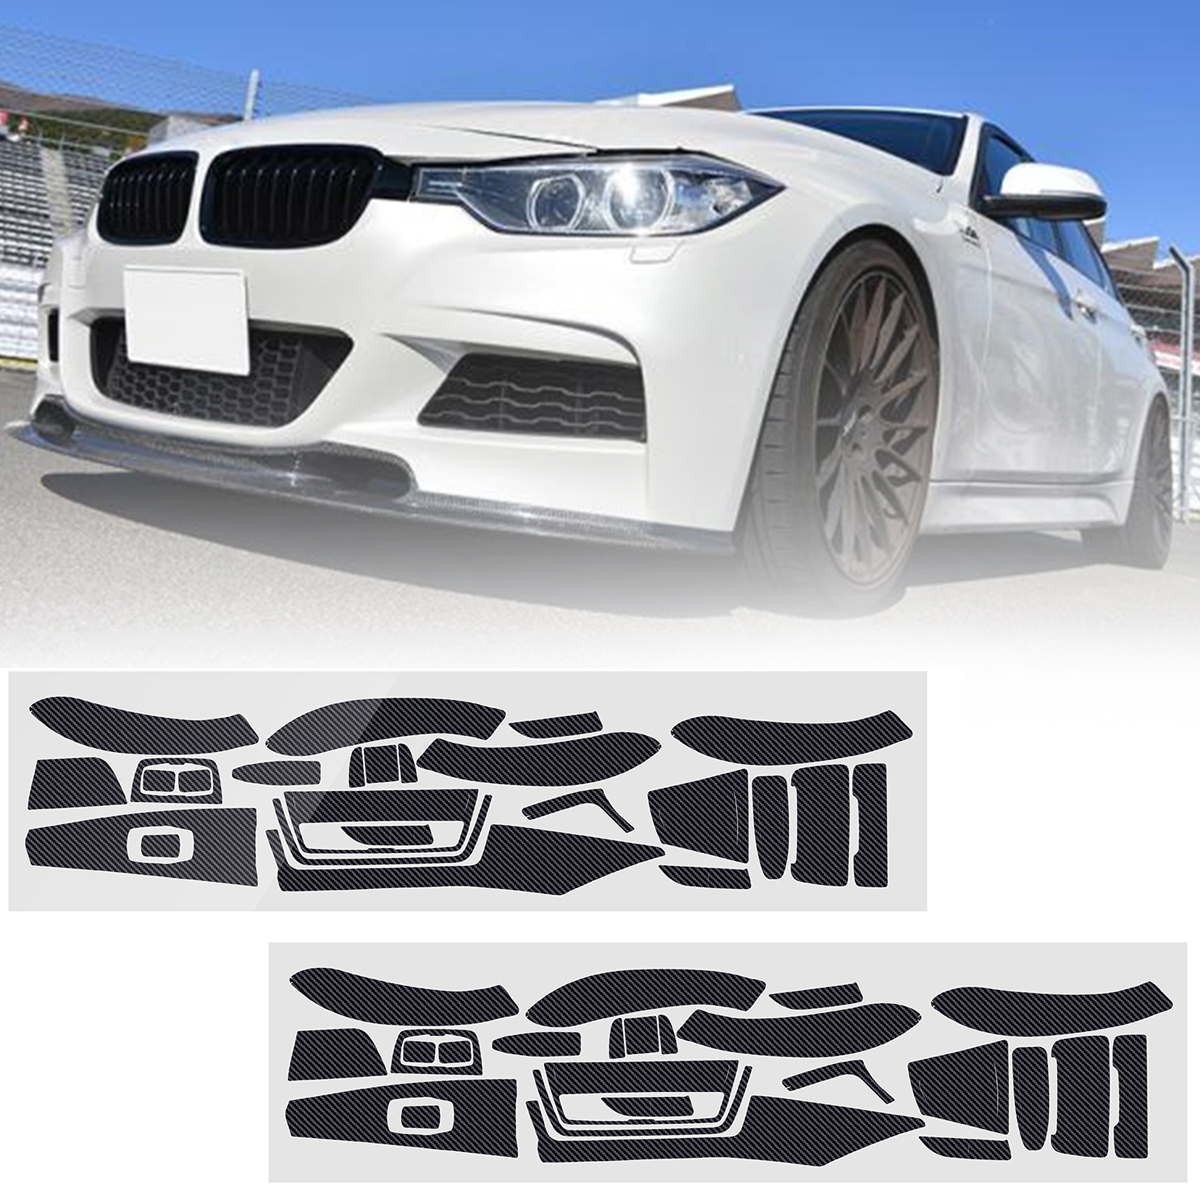 Carbon Fiber Pattern Car Interior Dashboard Sticker Wrap Decorat